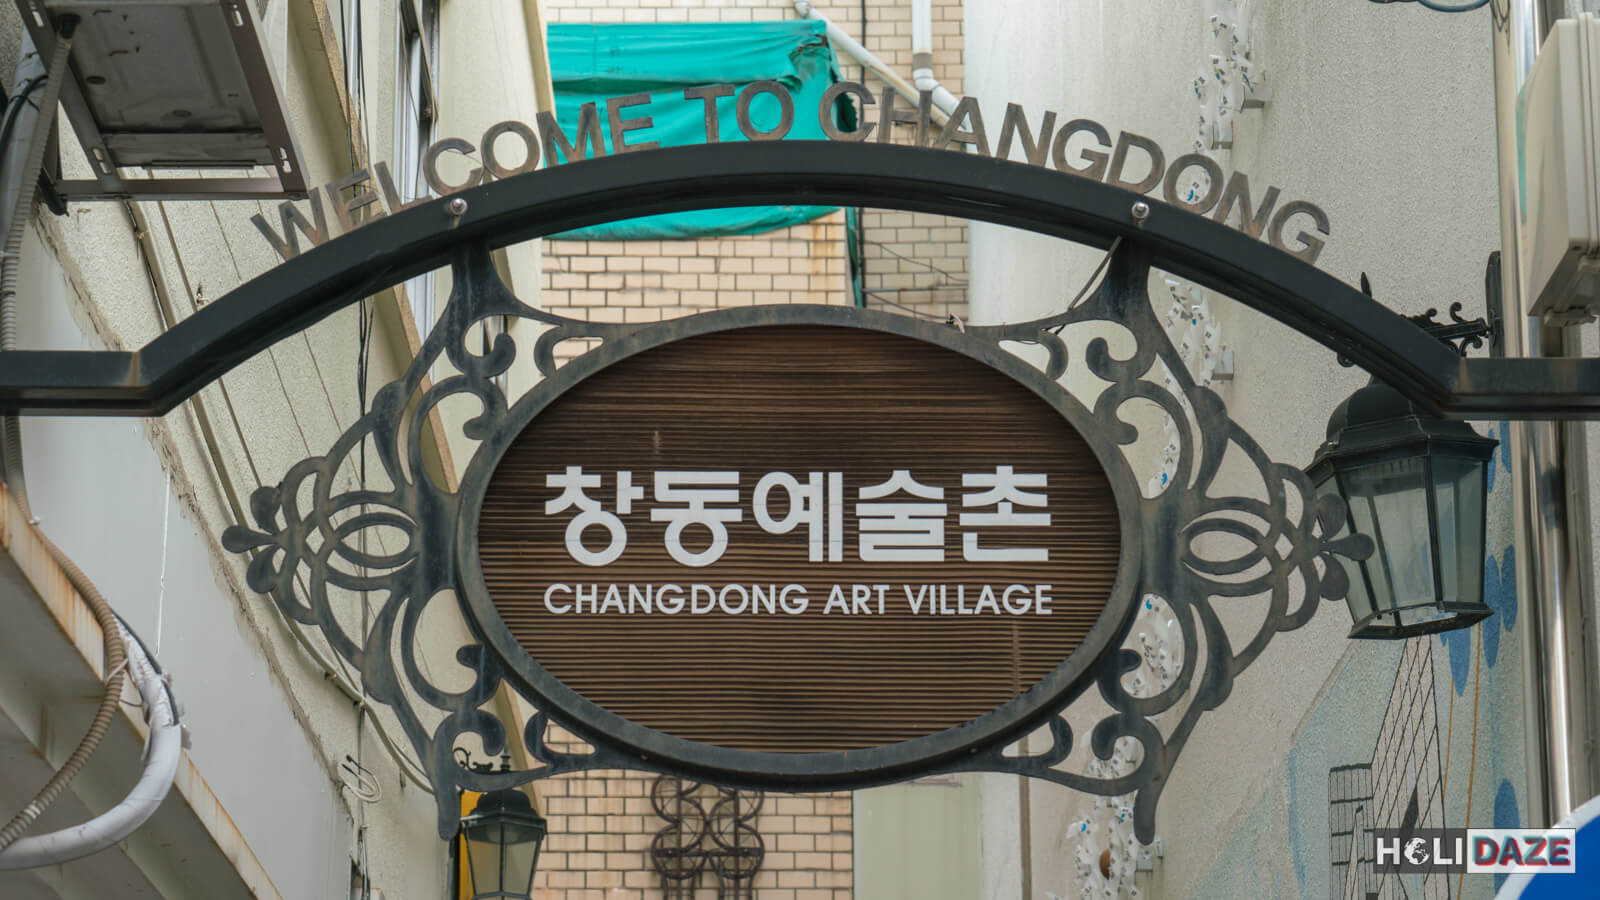 Welcome to Changdong Art Village in Masan, Korea